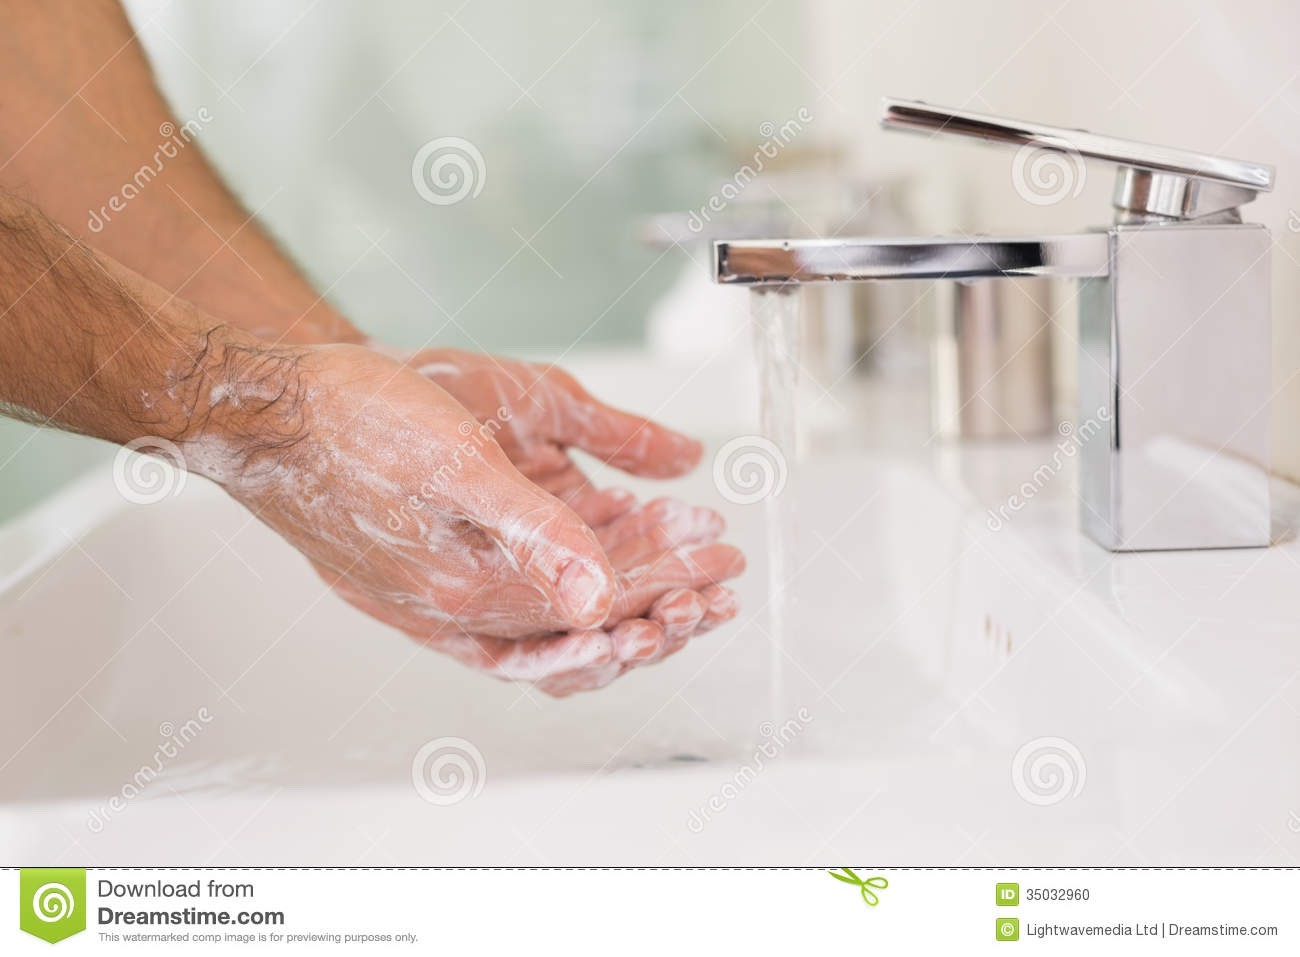 1st step, hands get really rough in the winter, if you live some place cold in the winter. Run your hands under warm sink water then add soap. After finished was your hands again this time using lotion, right know your giving your hands a daily shower, the soap for 0 germs and lotion for the smooth.